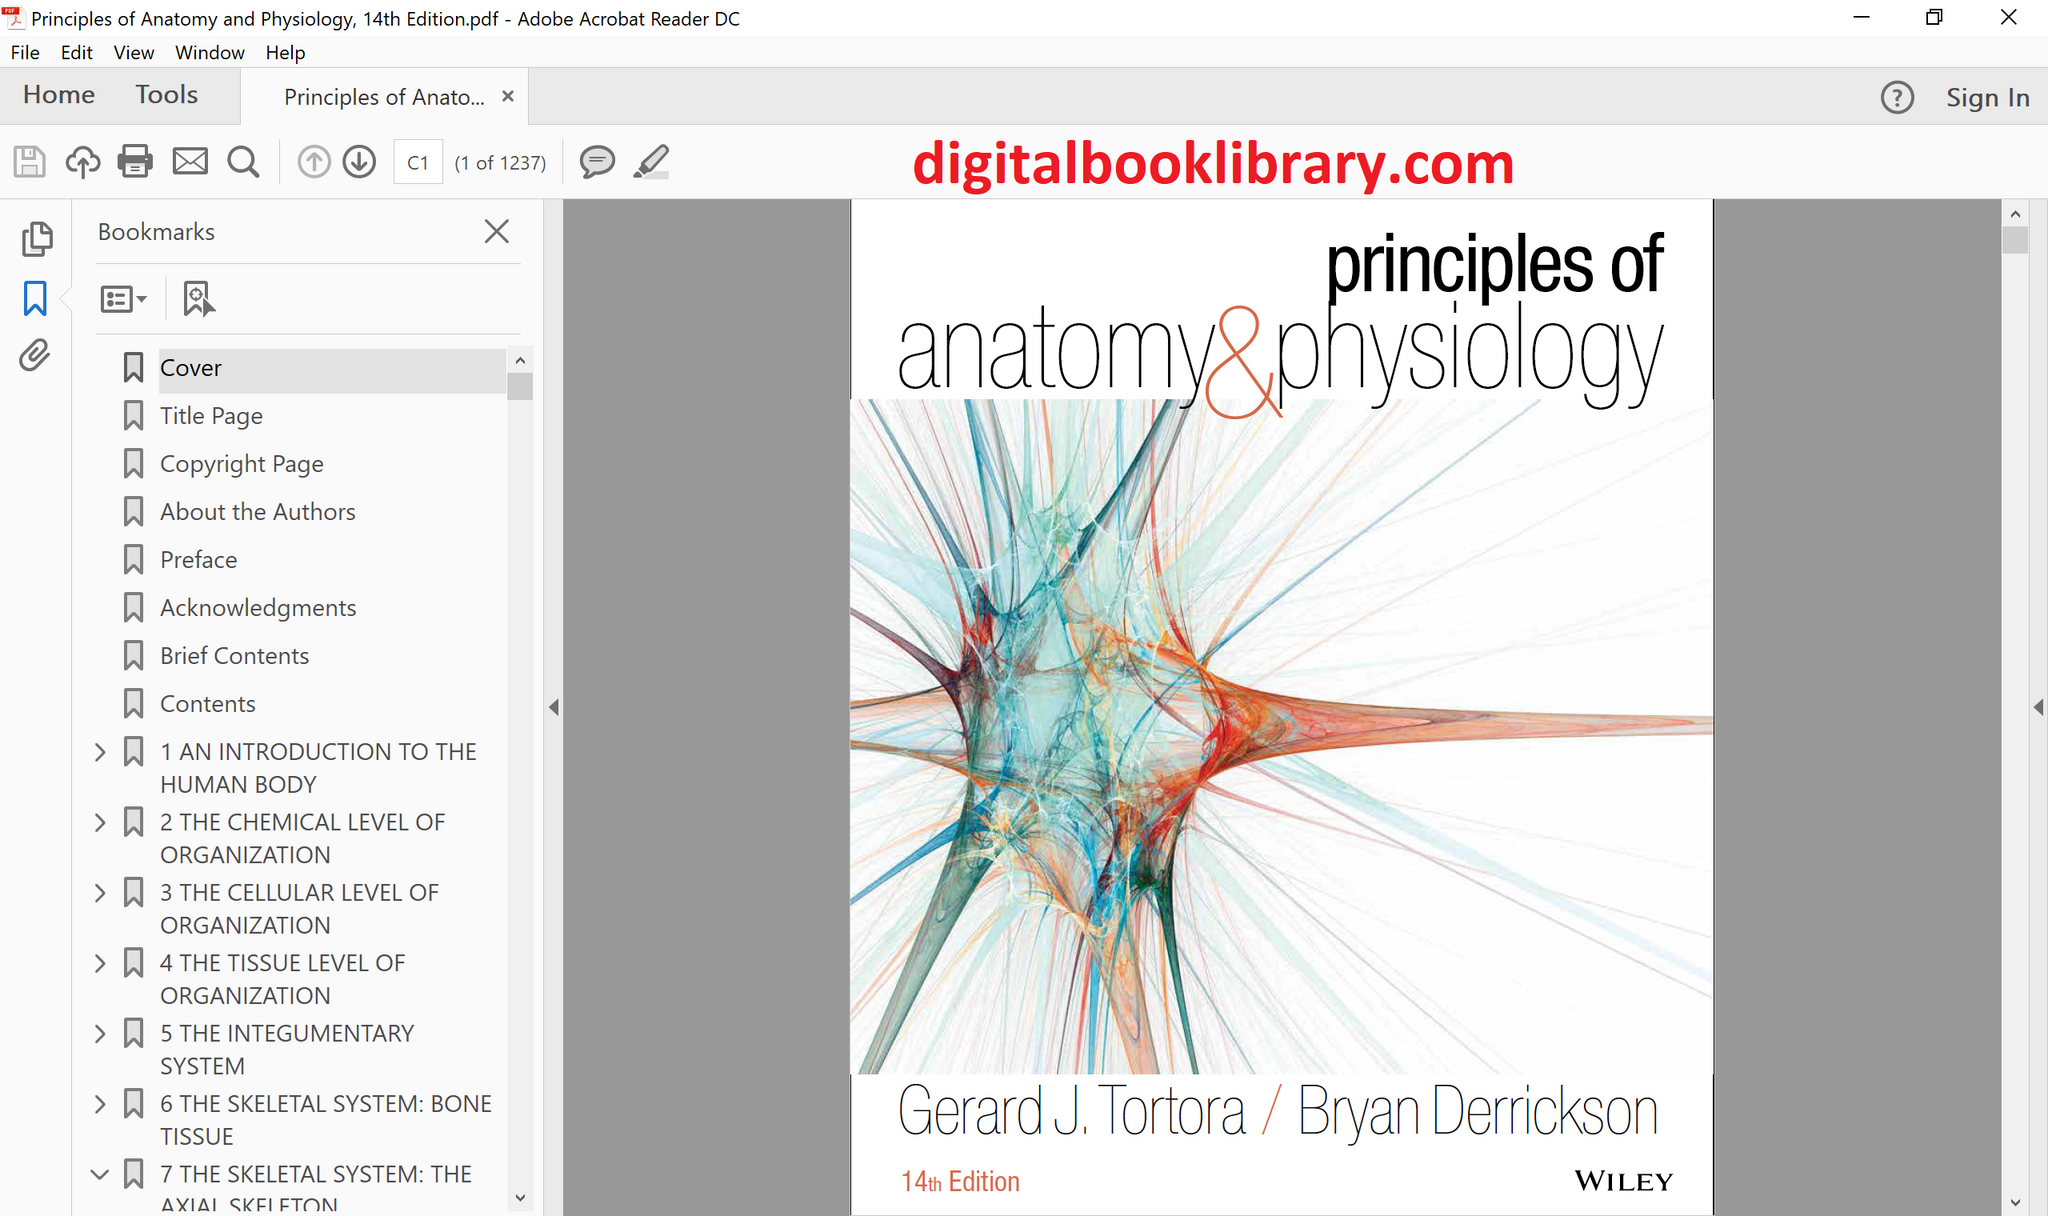 Principles of Anatomy and Physiology, 14th Edition - PDF Version ...